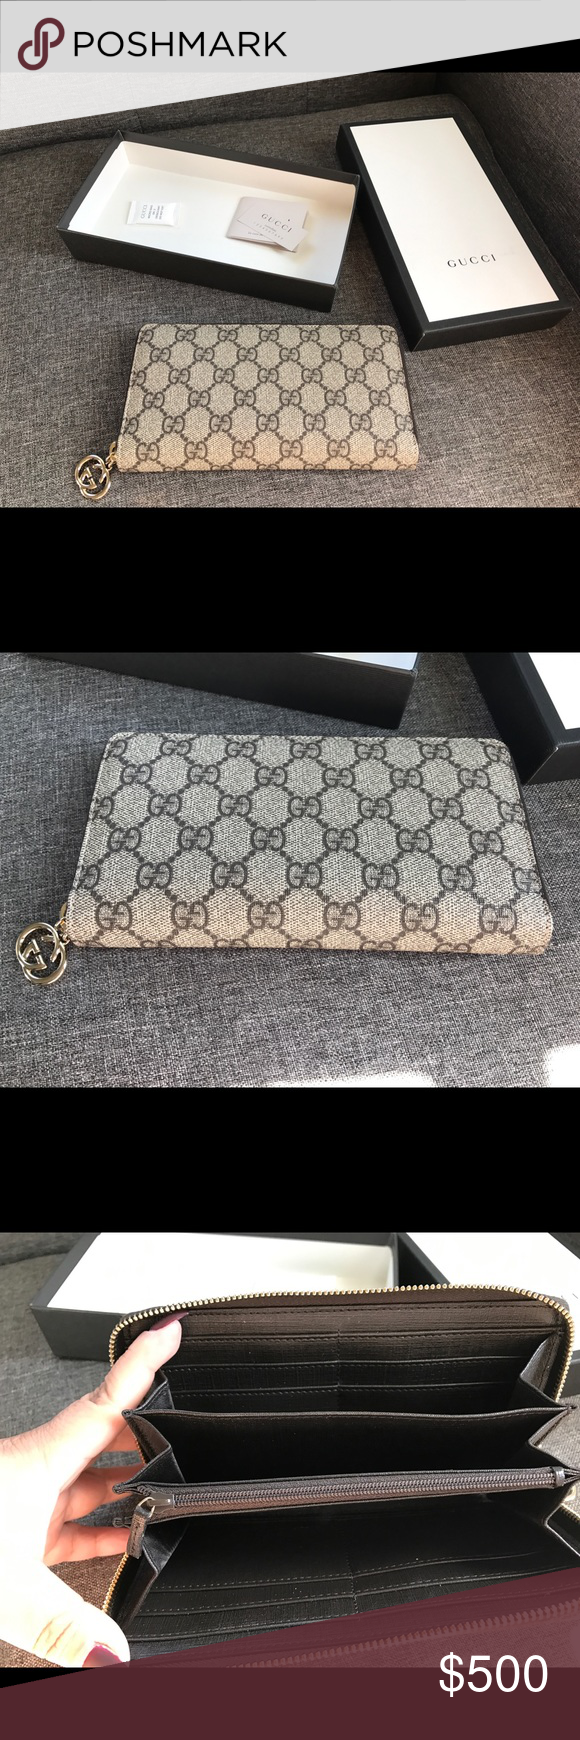 414f93d95cd Gucci Logo Zip Around Wallet Authentic GUCCI GG Monogram Zip Around Wallet  in Brown. This